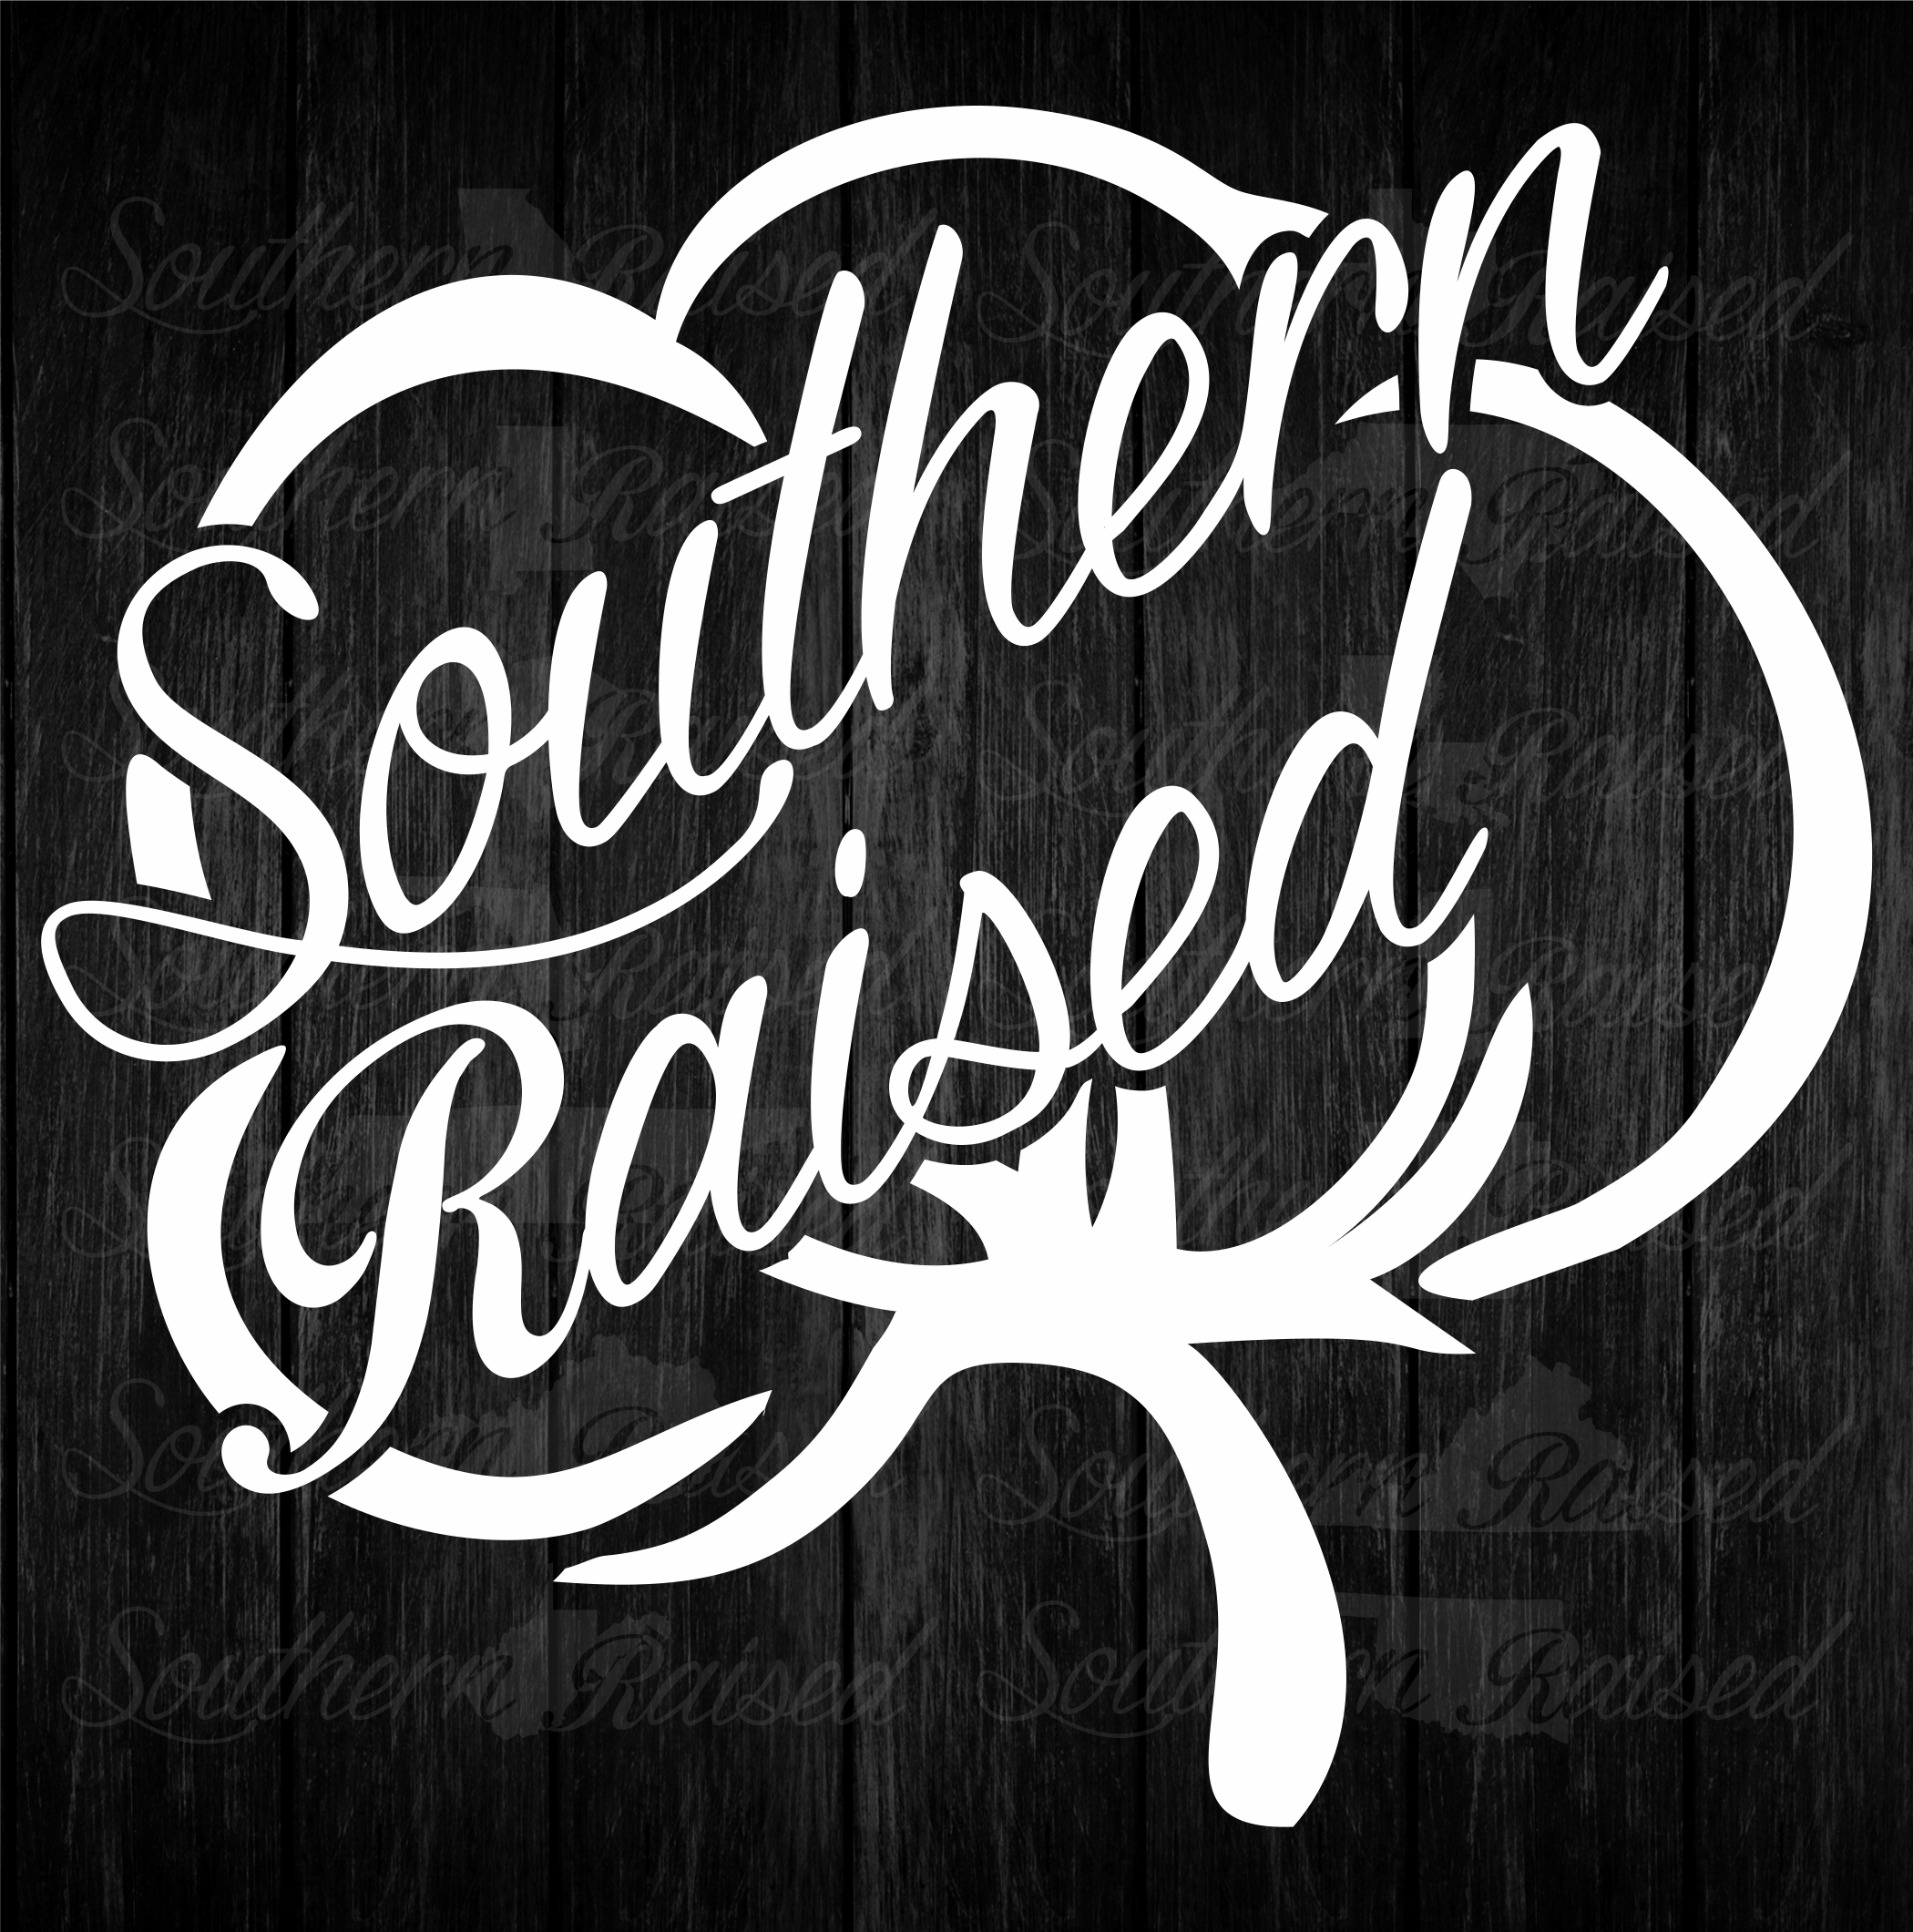 Southern Raised Square Cotton Decal Bad Bass Designs